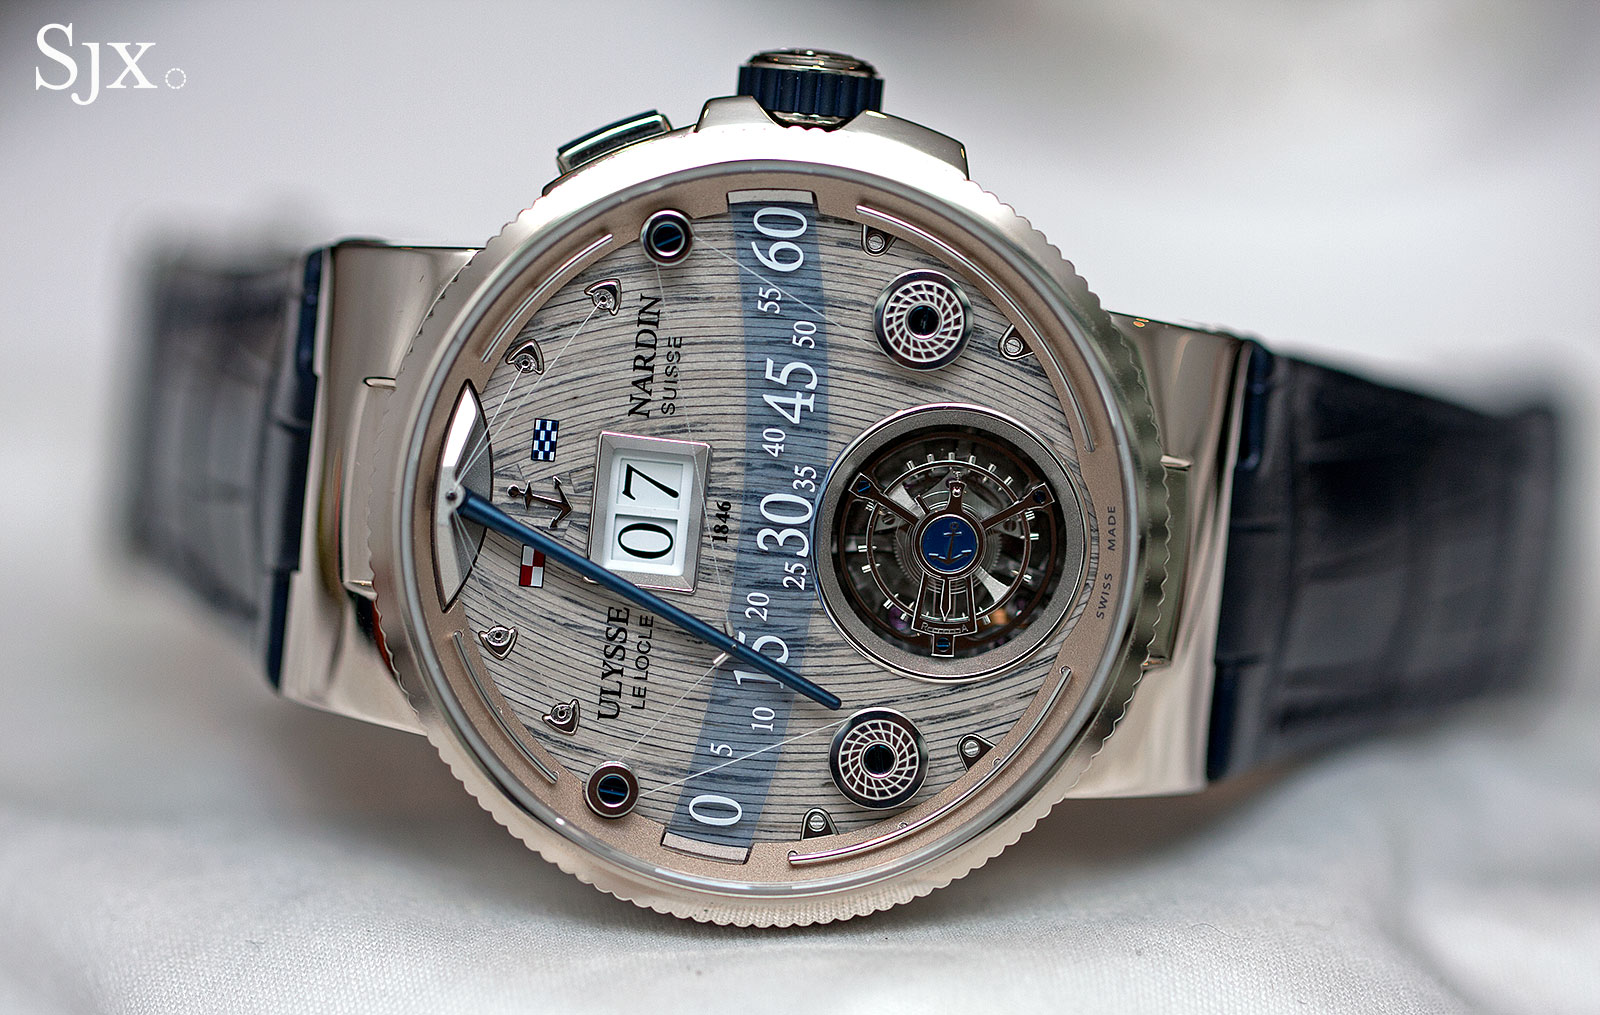 Ulysse-Nardin Grand Deck Marine Tourbillon